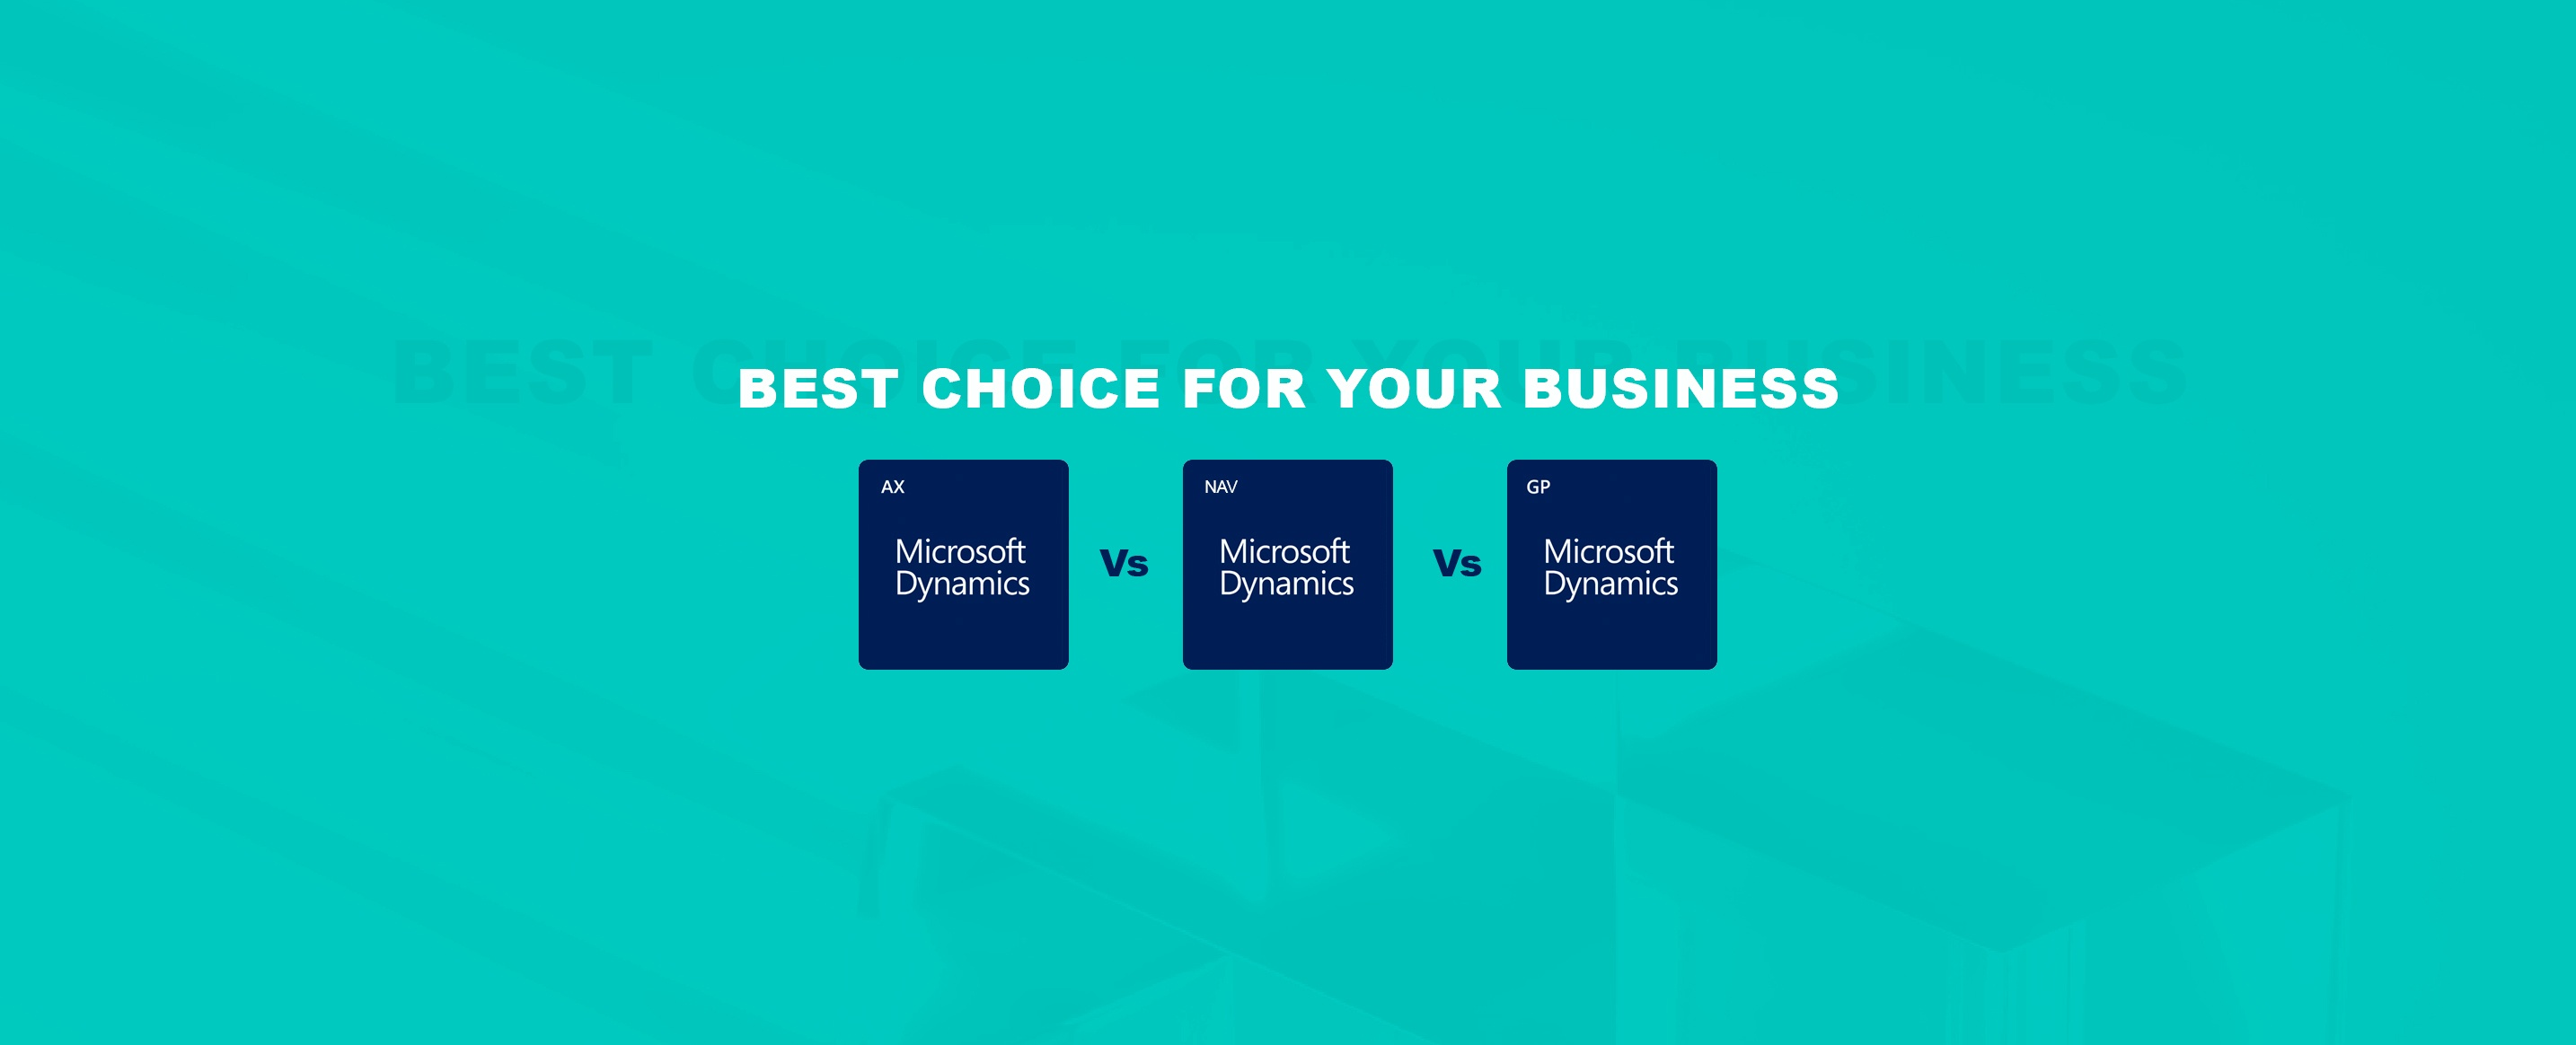 Microsoft-Dynamics-GP-AX-and-NAV-Best Choice-For-Your-Business-1